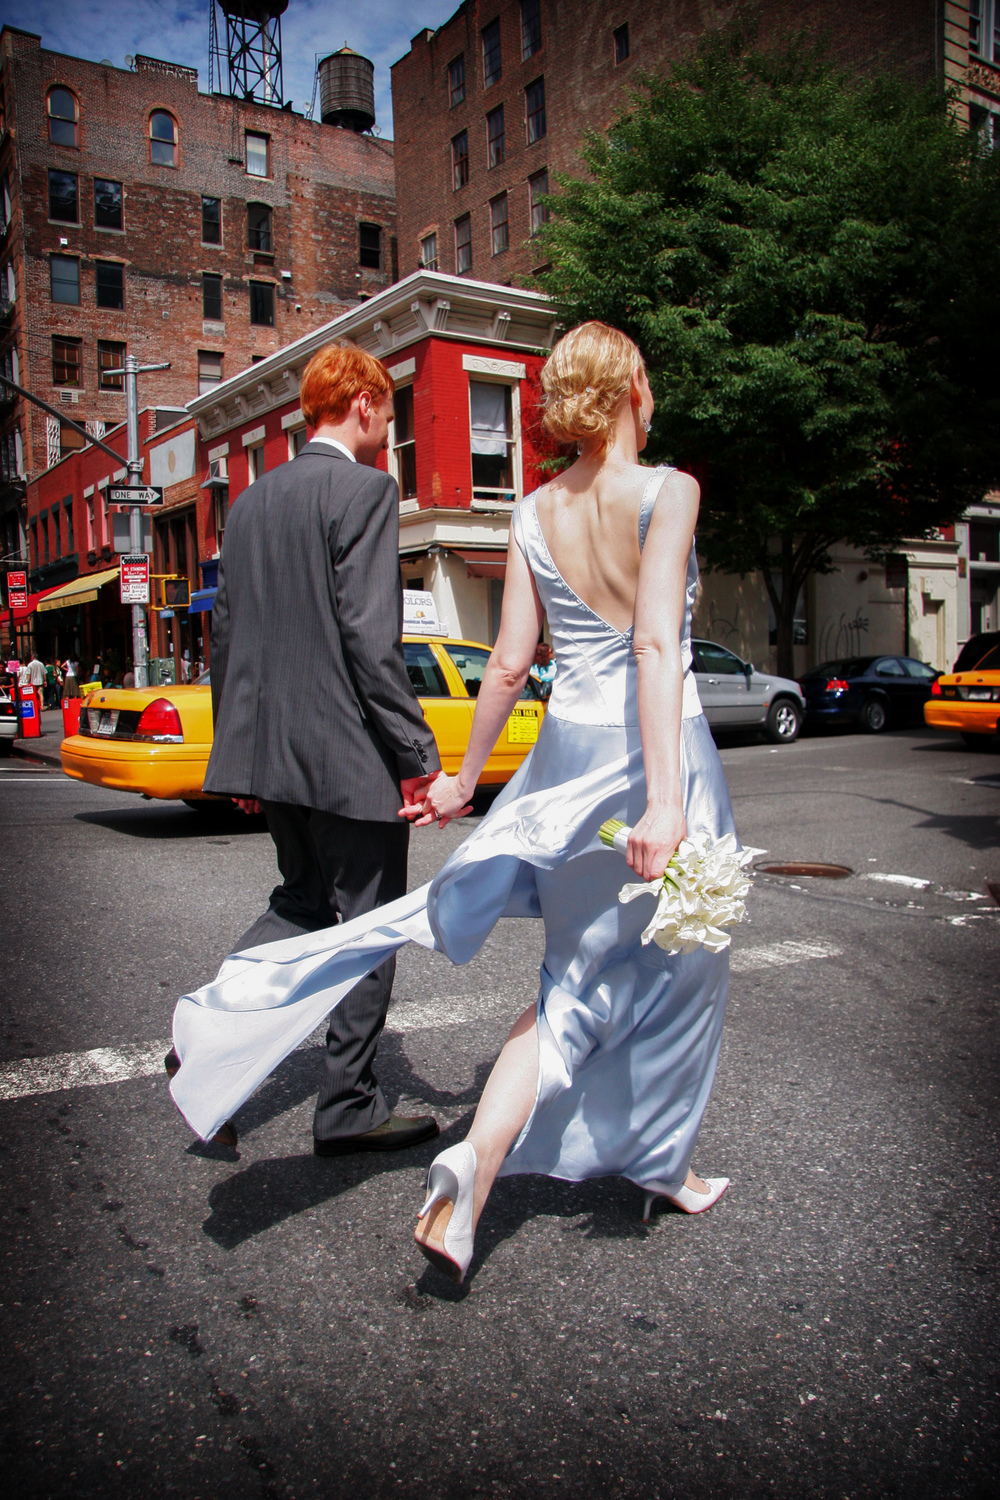 SoHo_New_York_City_Wedding_045.JPG